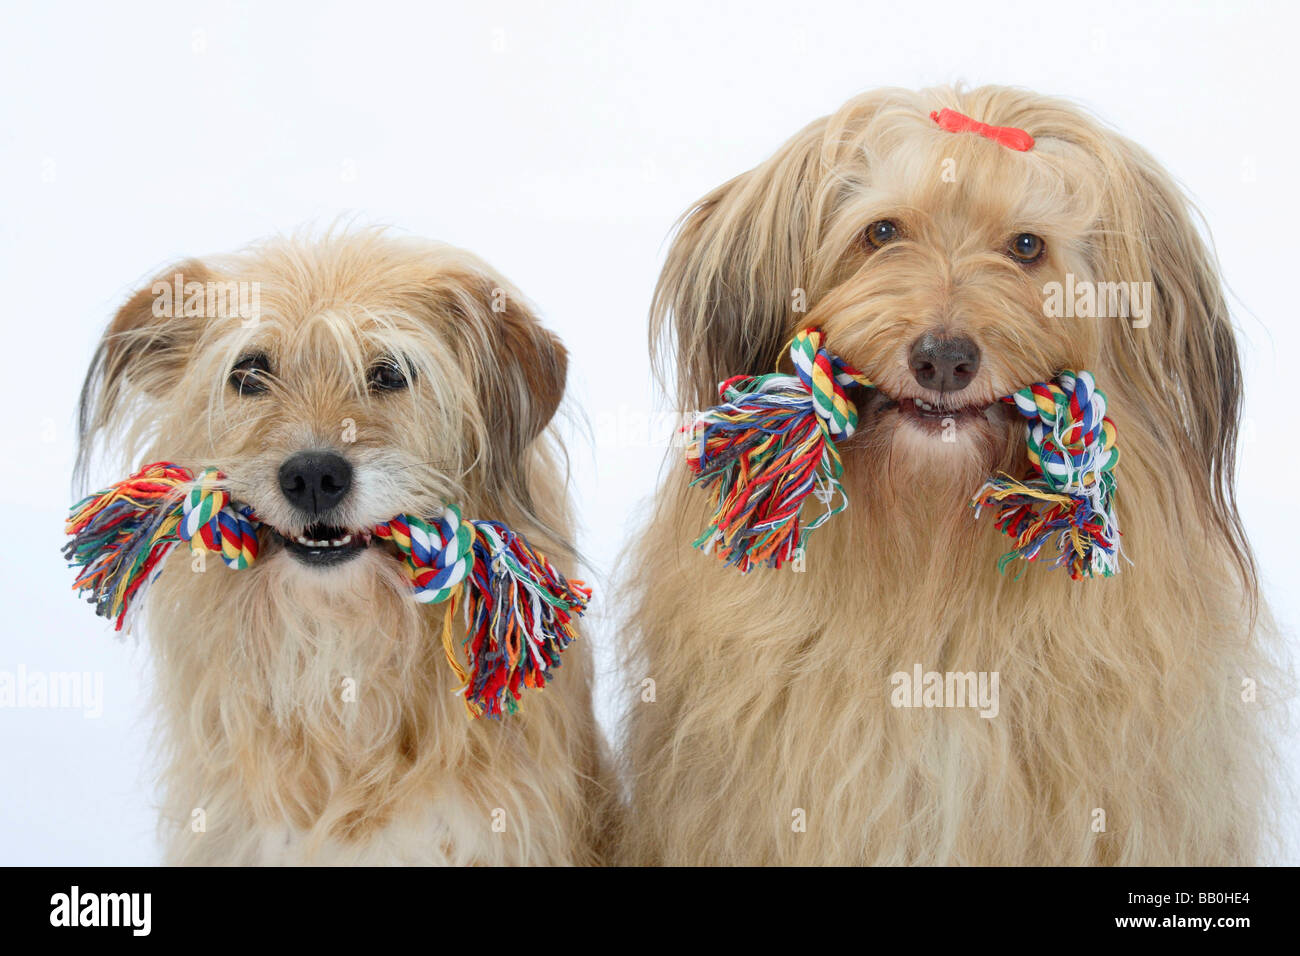 Mixed Breed Dogs toy - Stock Image